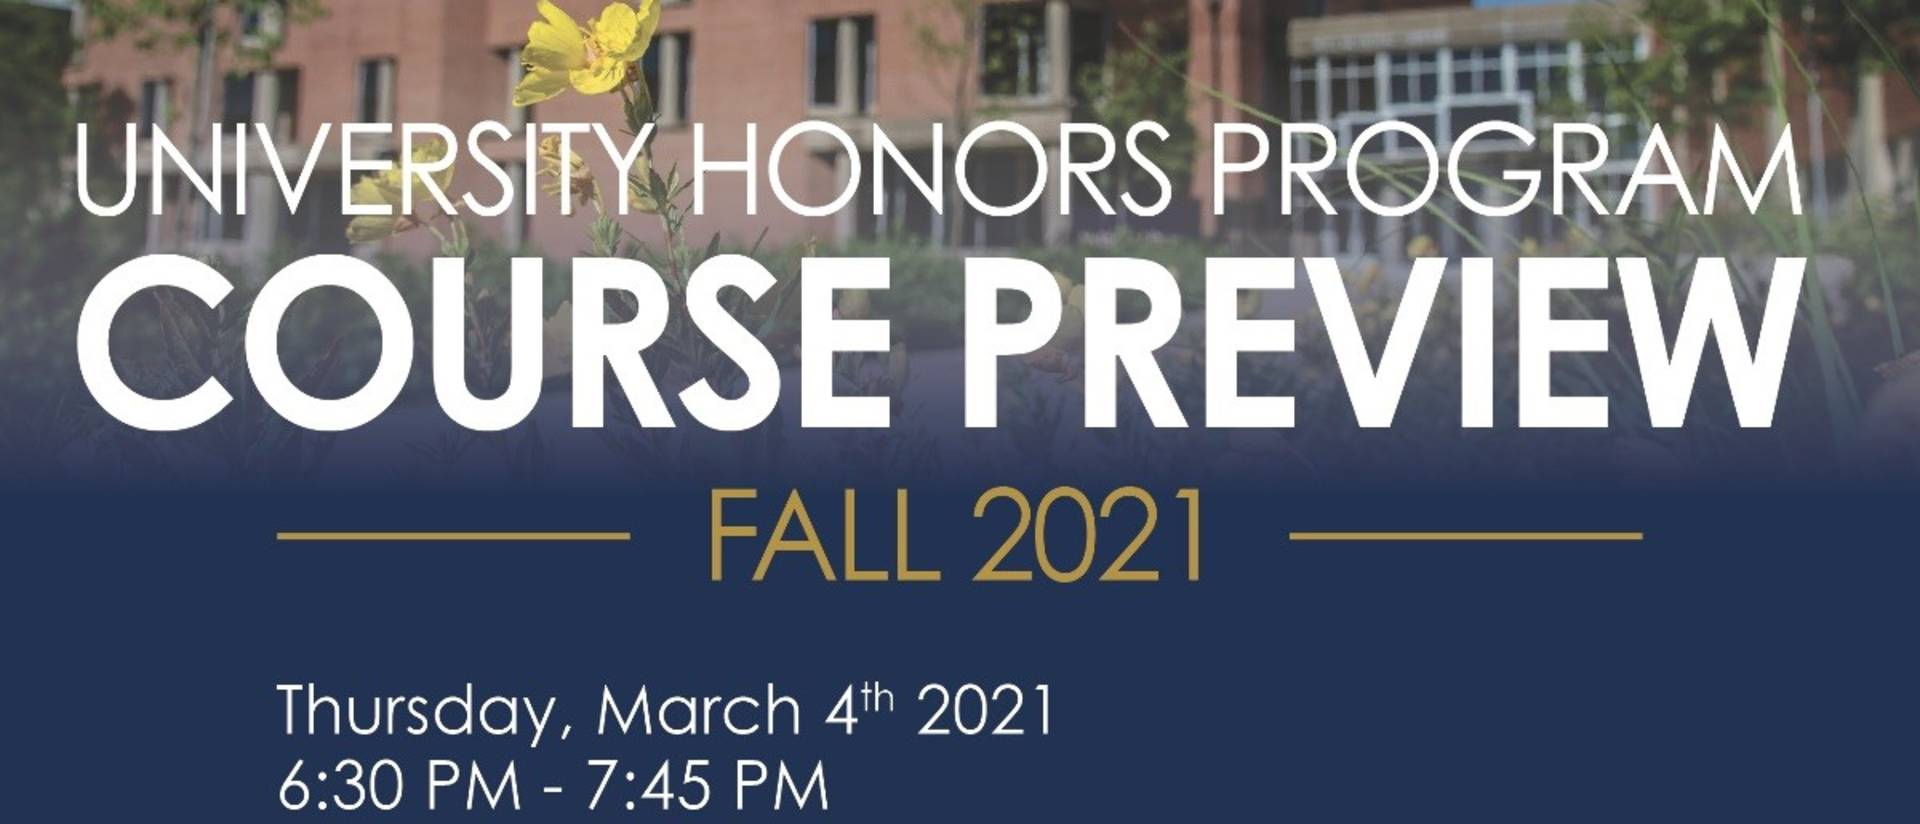 Fall 2021 Honors Course Preview Poster